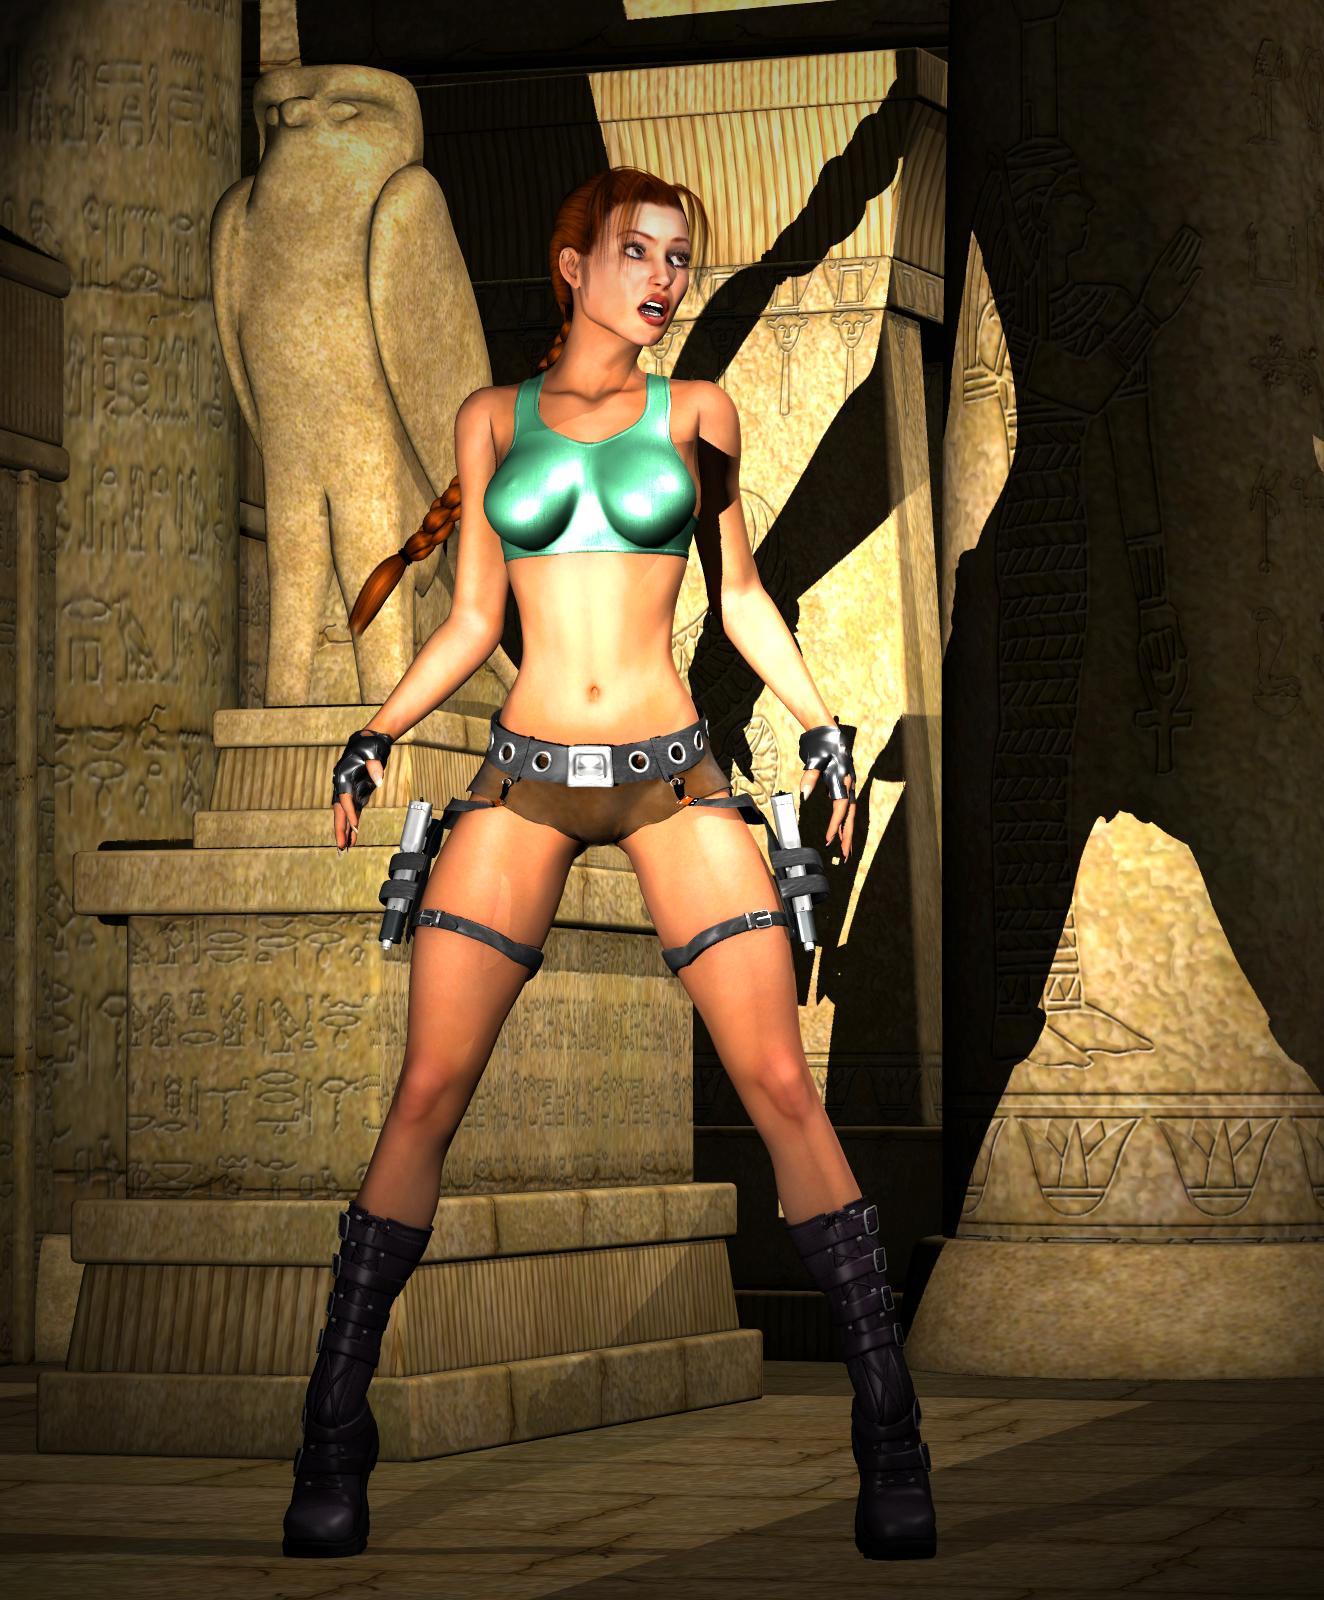 Tomb raider 3d boobs images sexy stupid tit